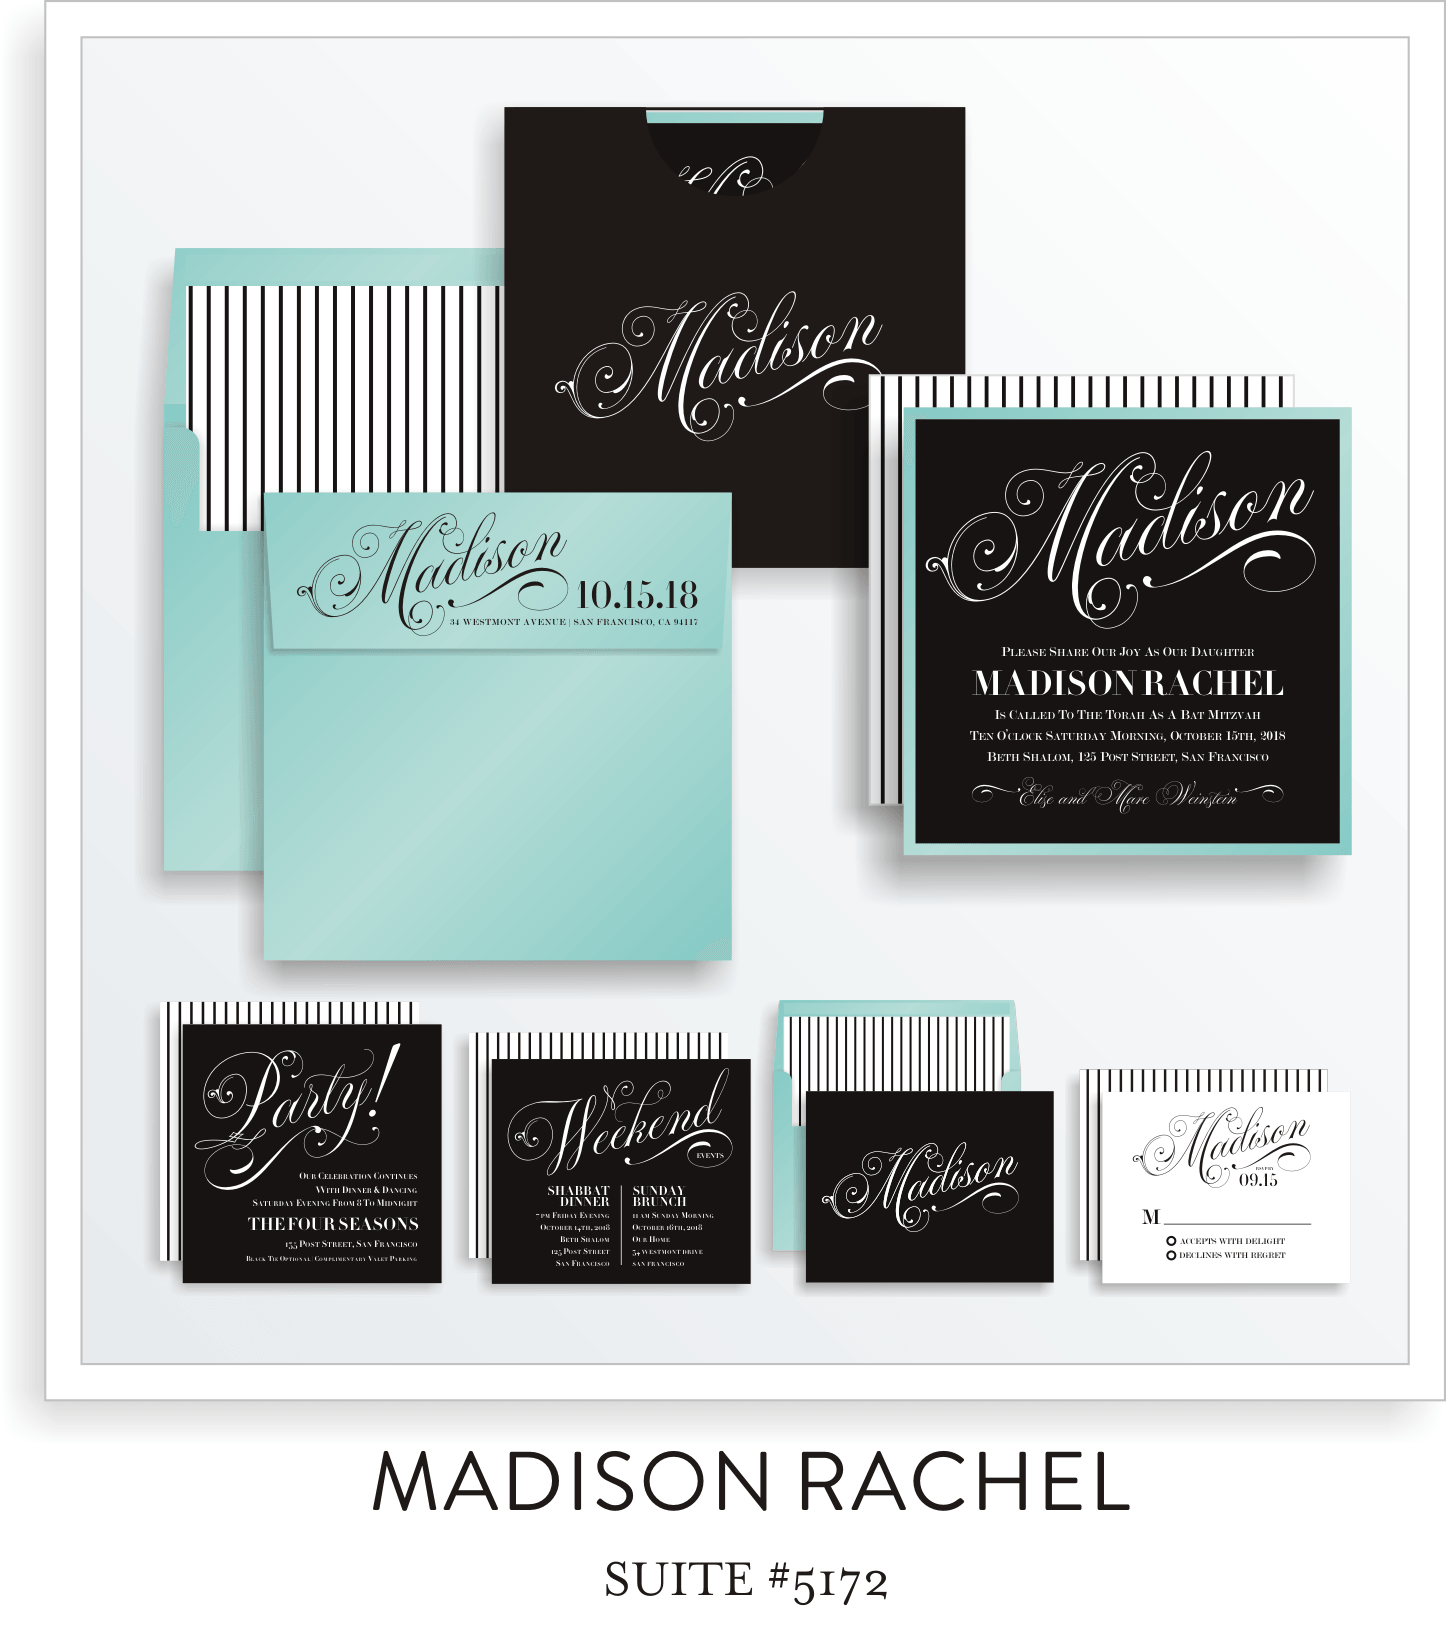 Copy of Bat Mitzvah Invitation Suite 5172 - Madison Rachel